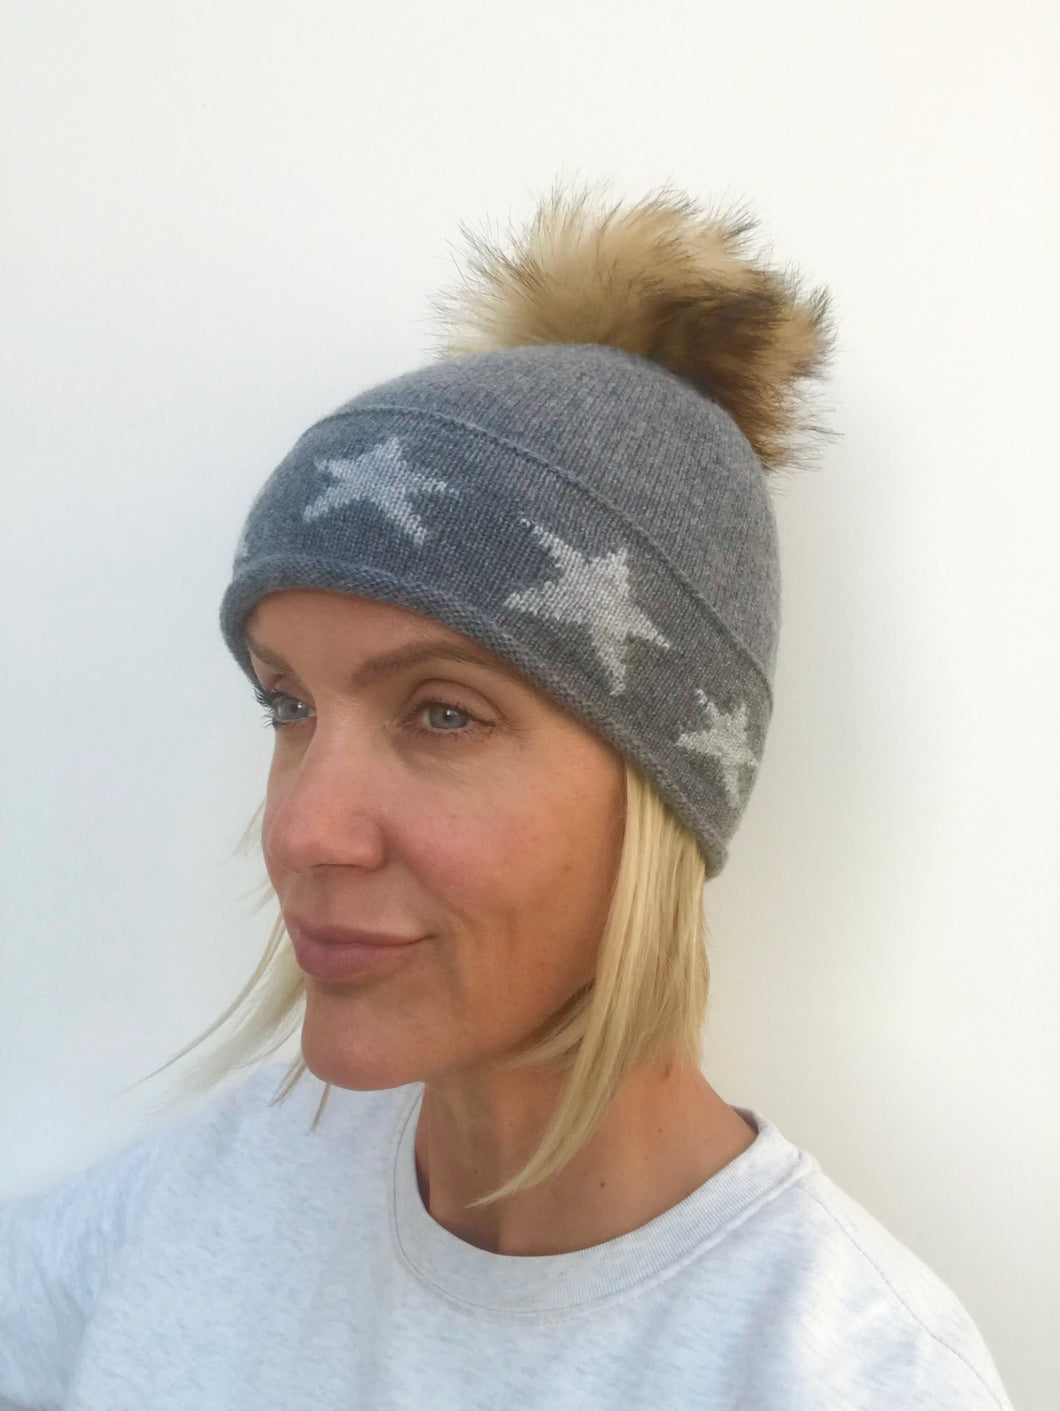 100% Pure Cashmere Hat with Natural Faux Pom Pom in Grey with Stars